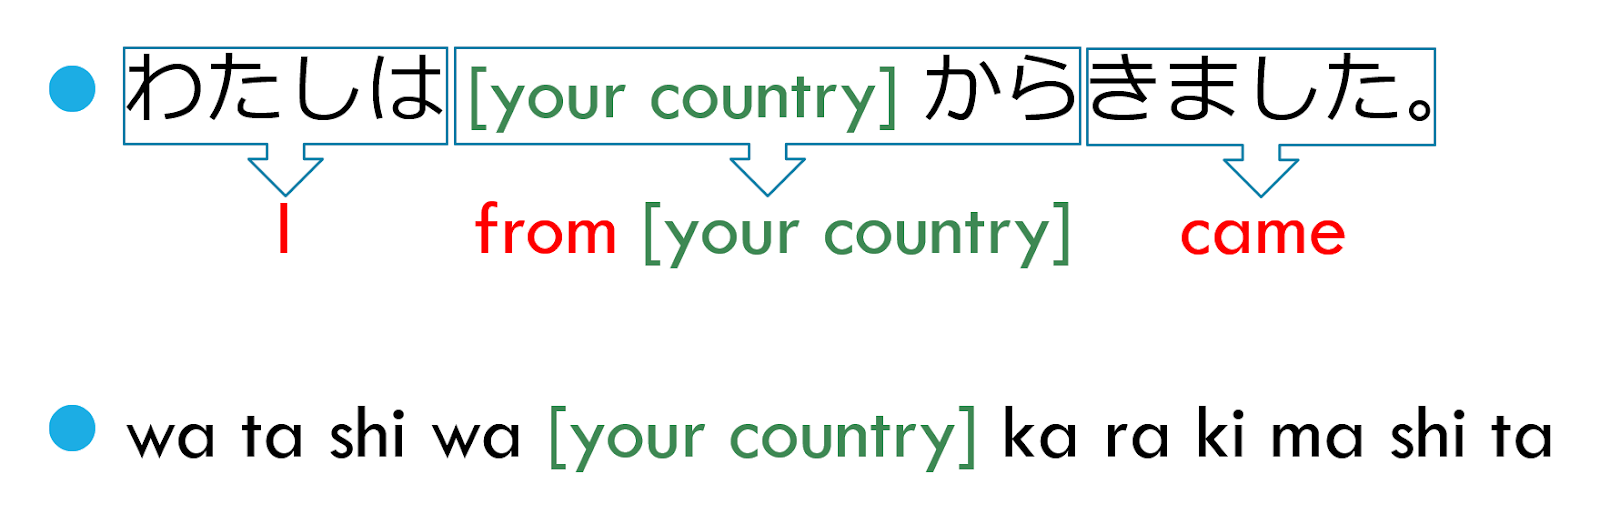 How To Introduce Yourself In Japanese Lingual Ninja Japanese